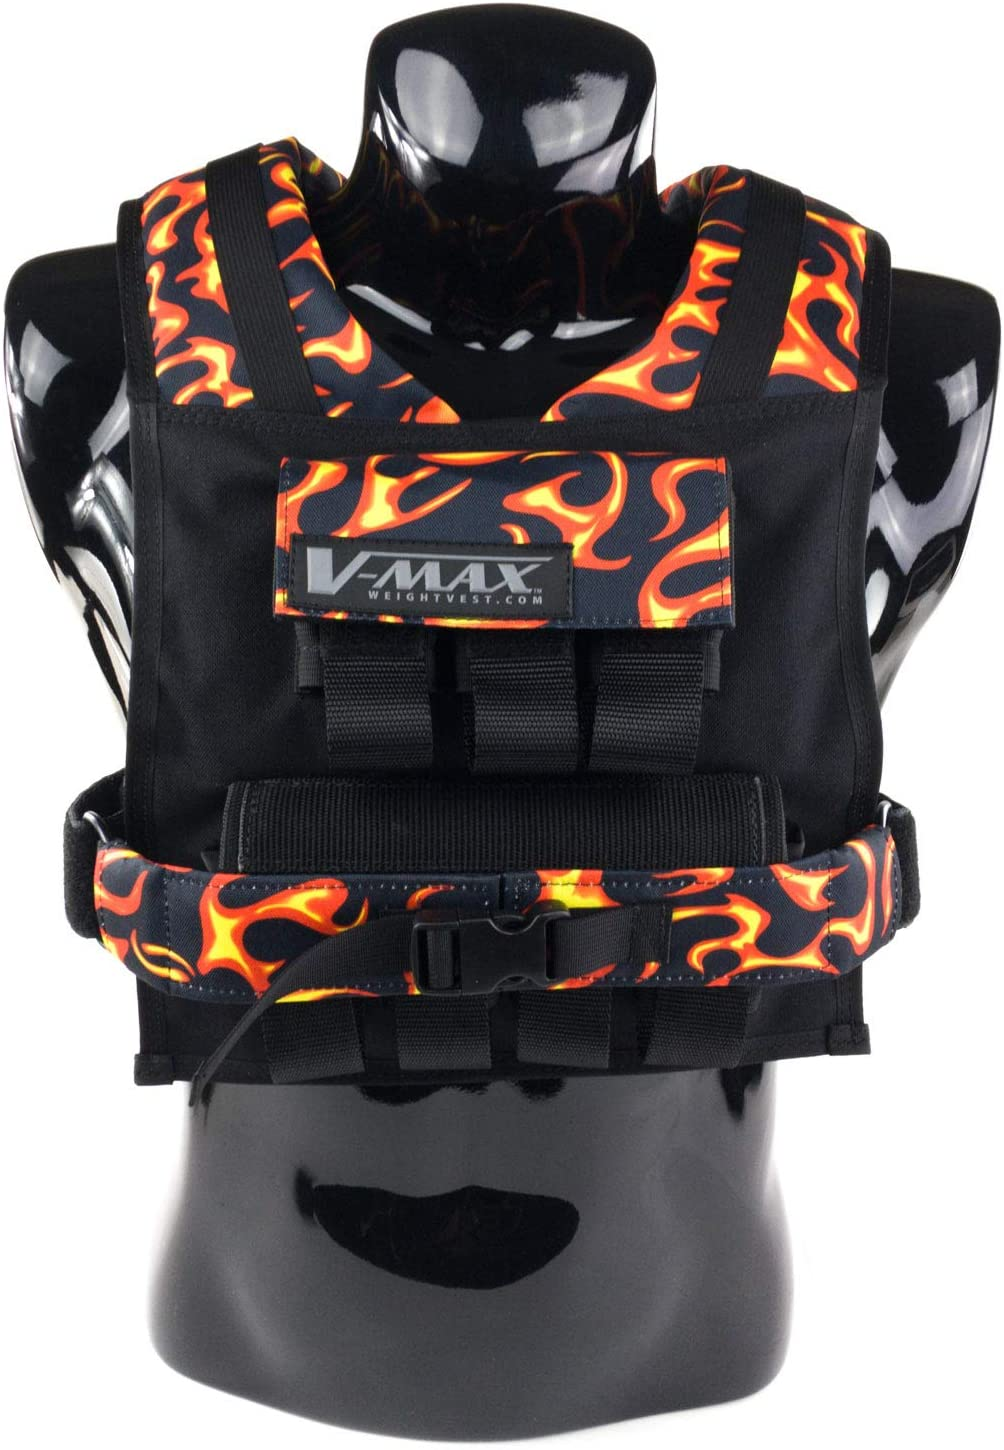 35LB V-MAX Max 56% OFF Washington Mall Weighted Vest Limited Edition. in USA. Made Adjustabl